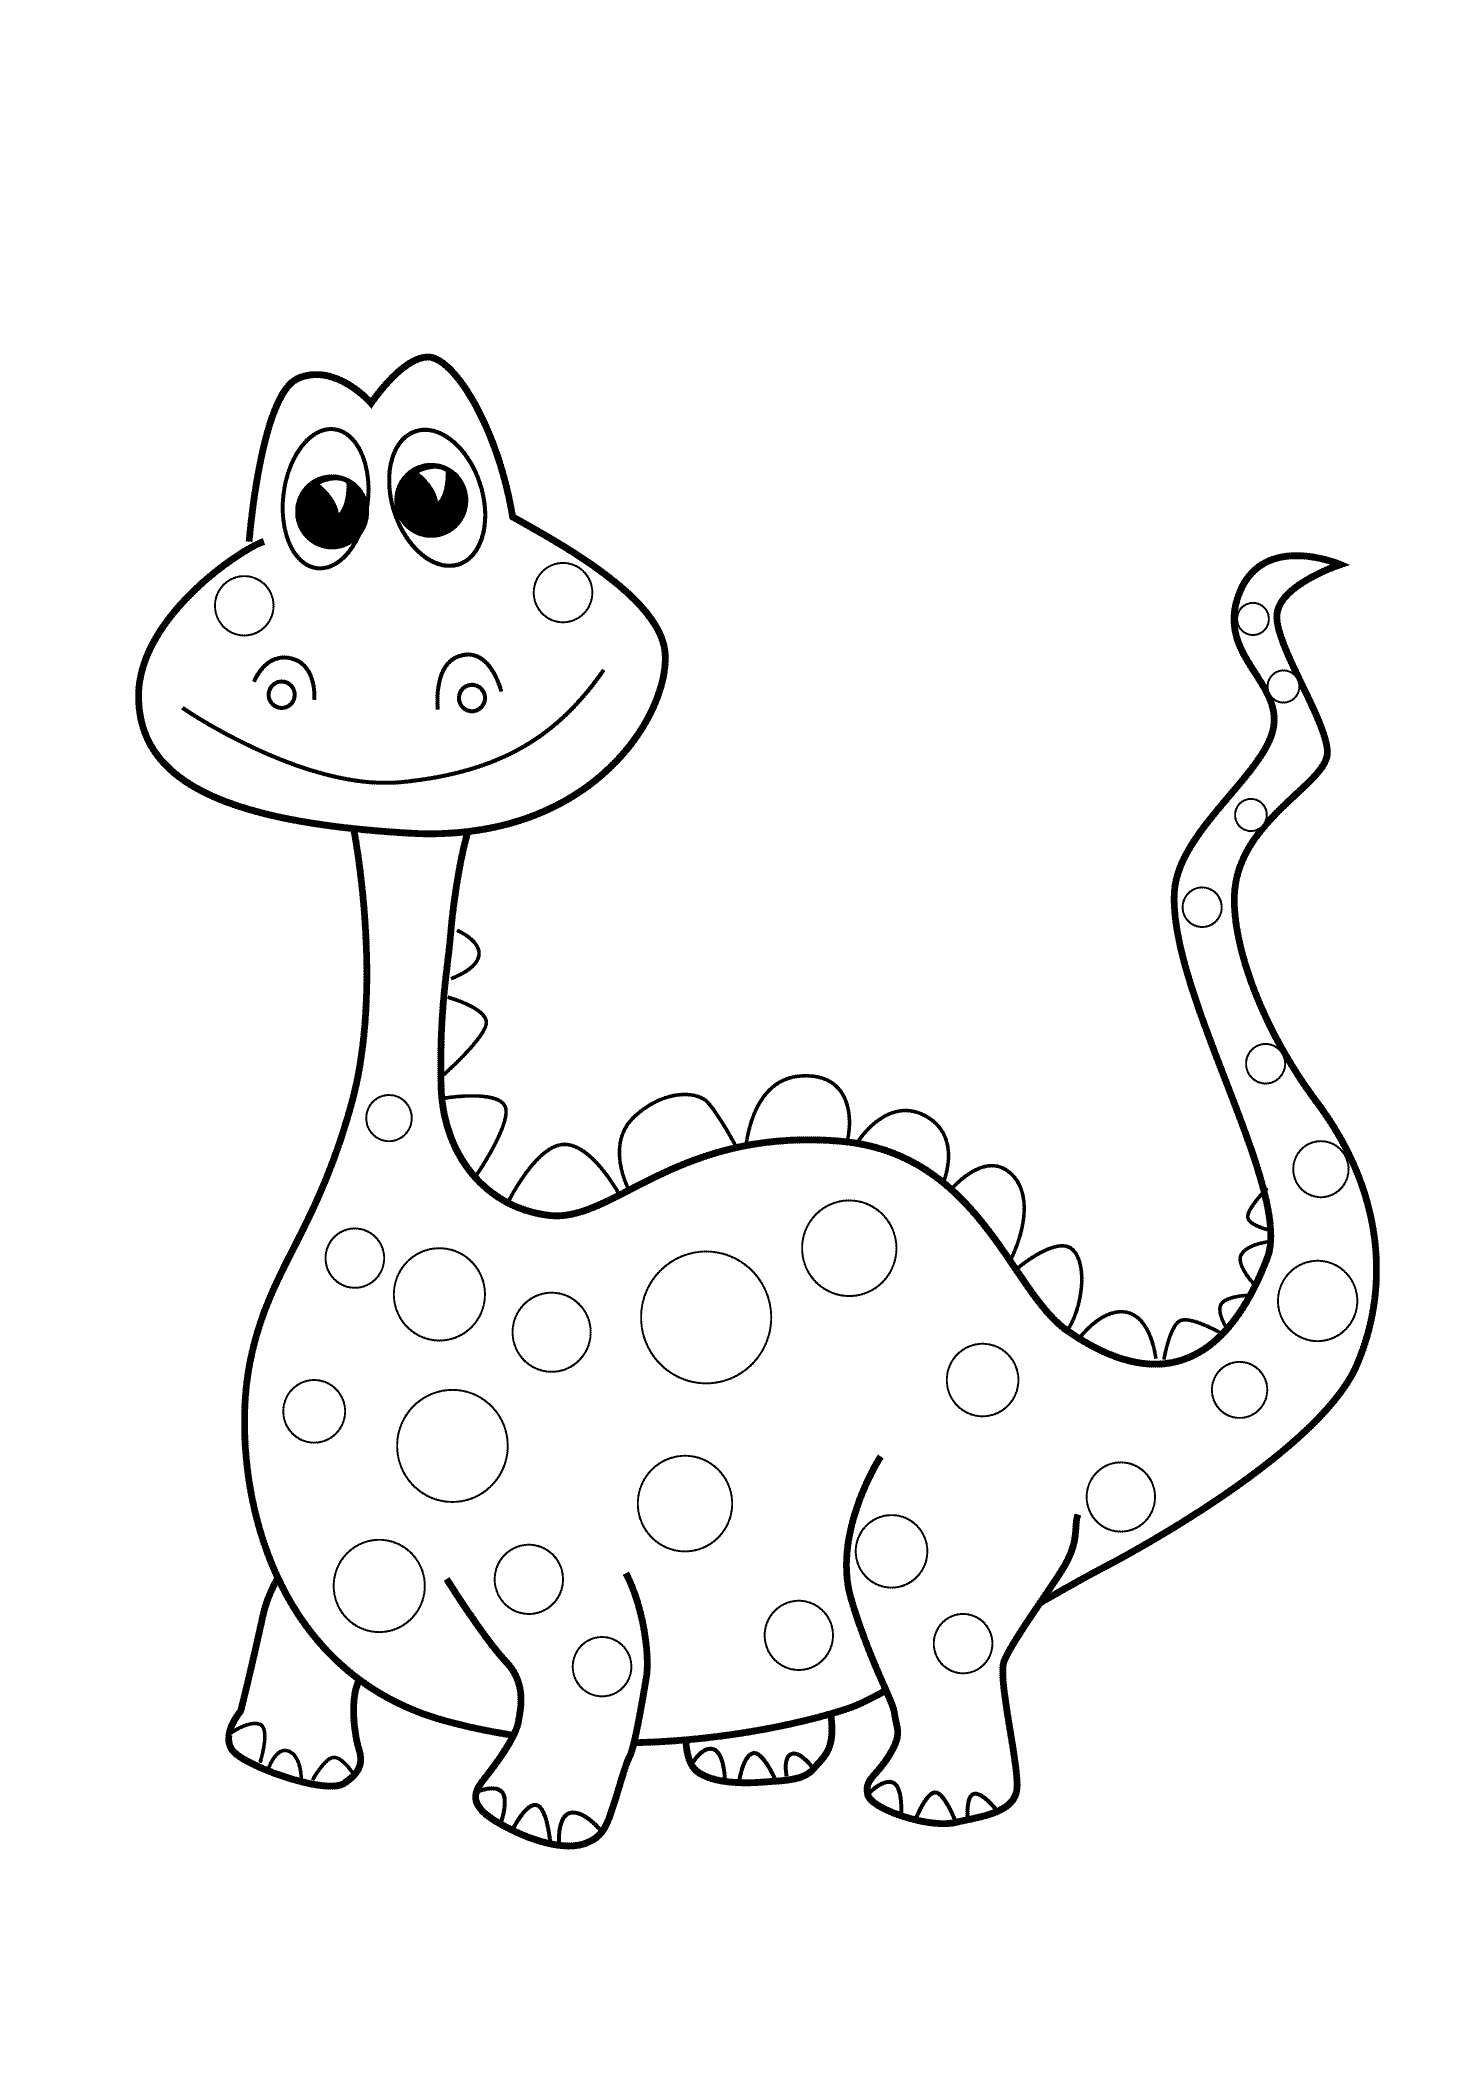 dinosaur images to colour baby dinosaur coloring pages for preschoolers activity colour dinosaur to images